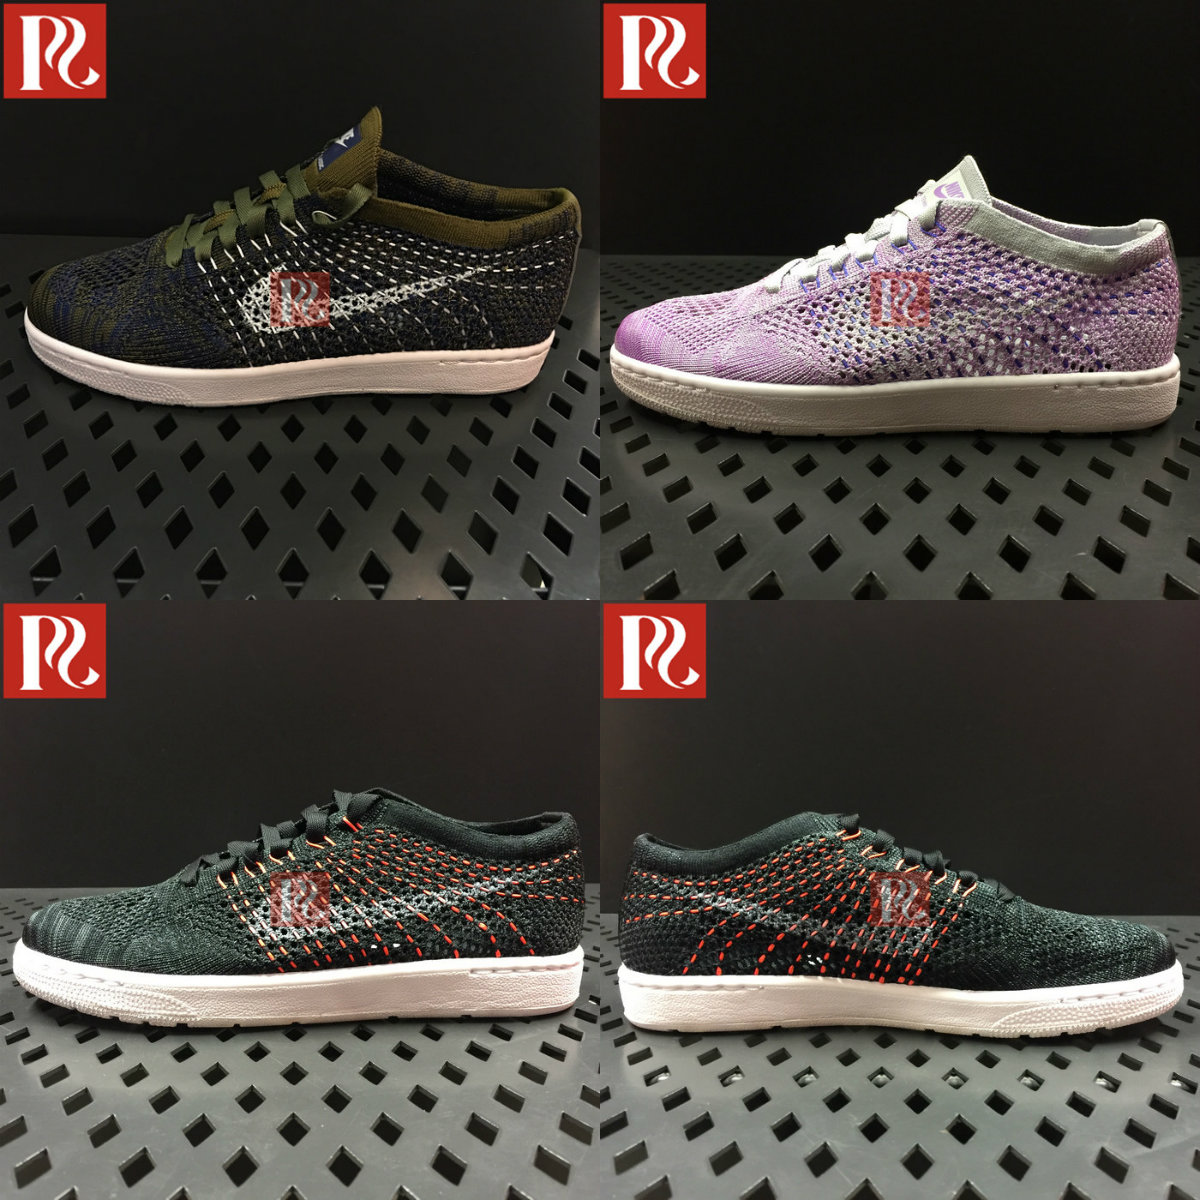 NIKE Nike genuine women's flying wire woven sports casual shoes 833860-301